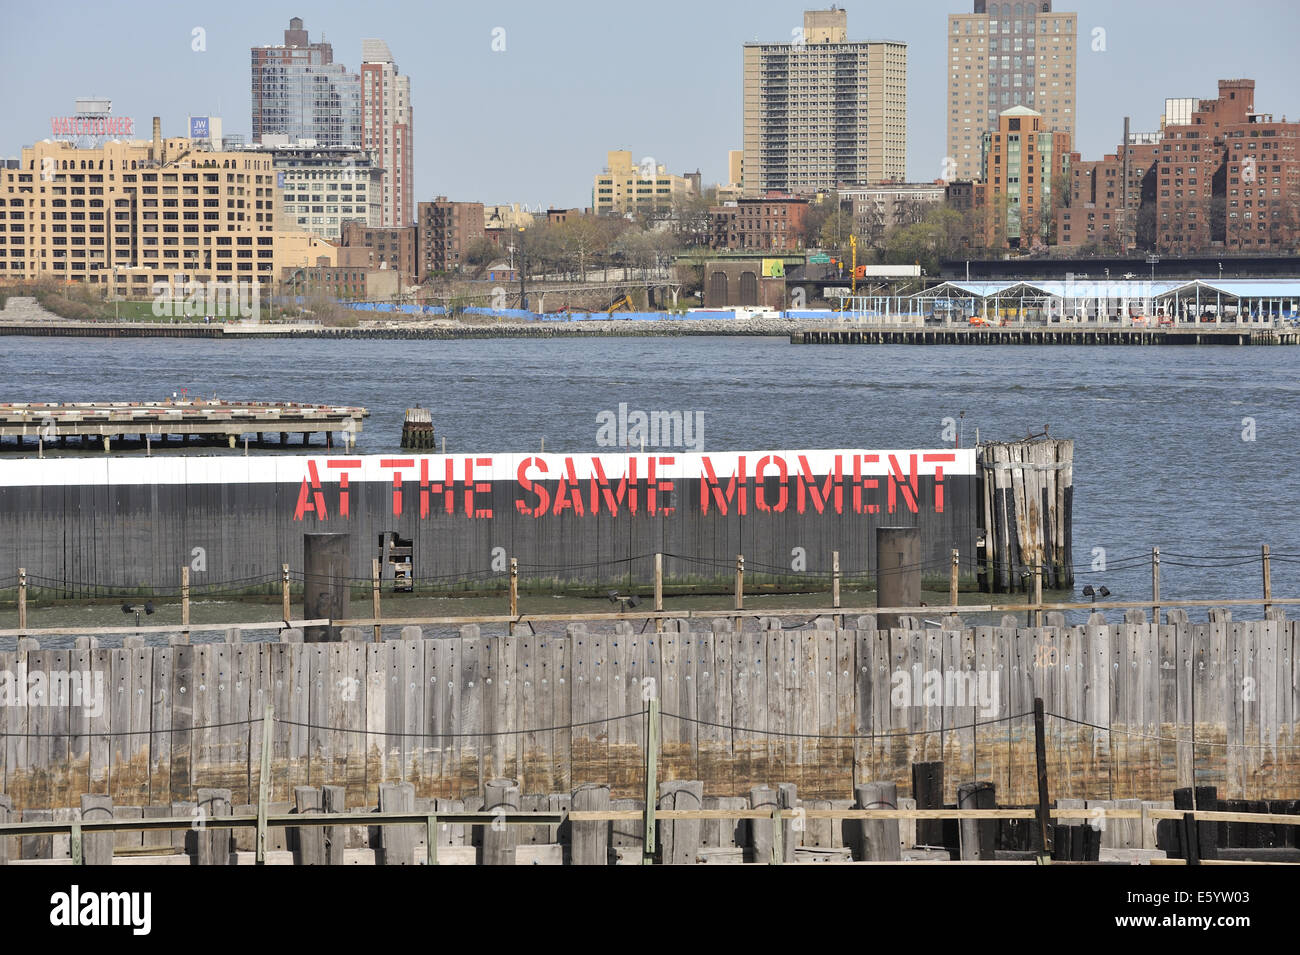 Lawrence Weiner's conceptual artwork 'At The Same Moment', painted on pilings on the East River, New - Stock Image